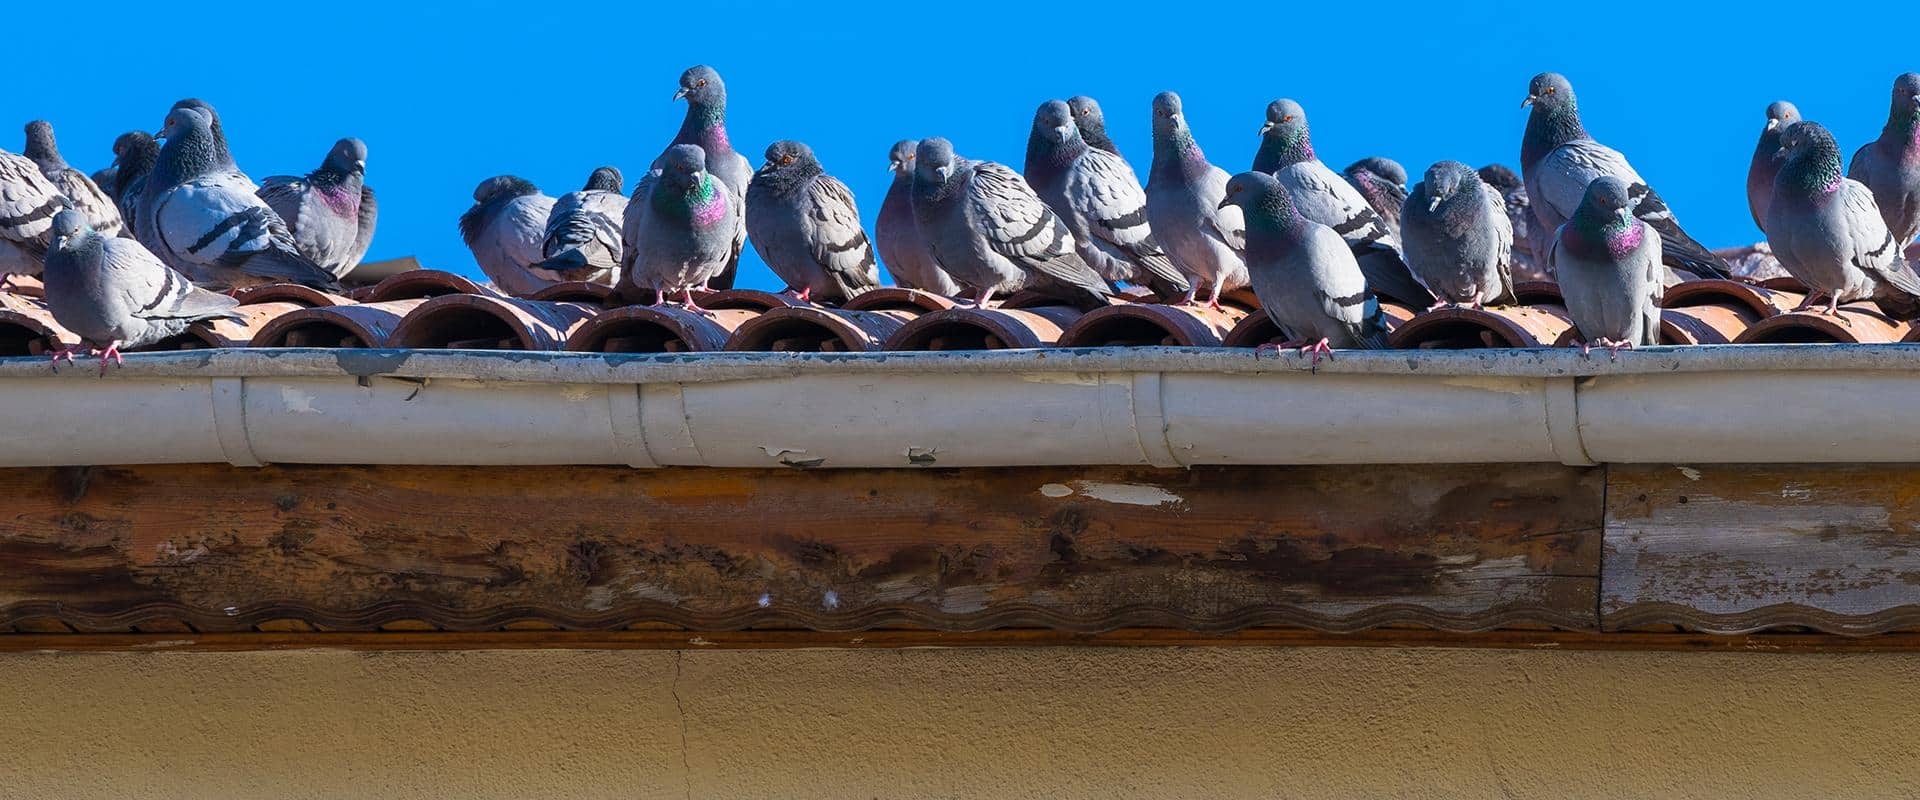 pigeons on roof in kittitas county wa